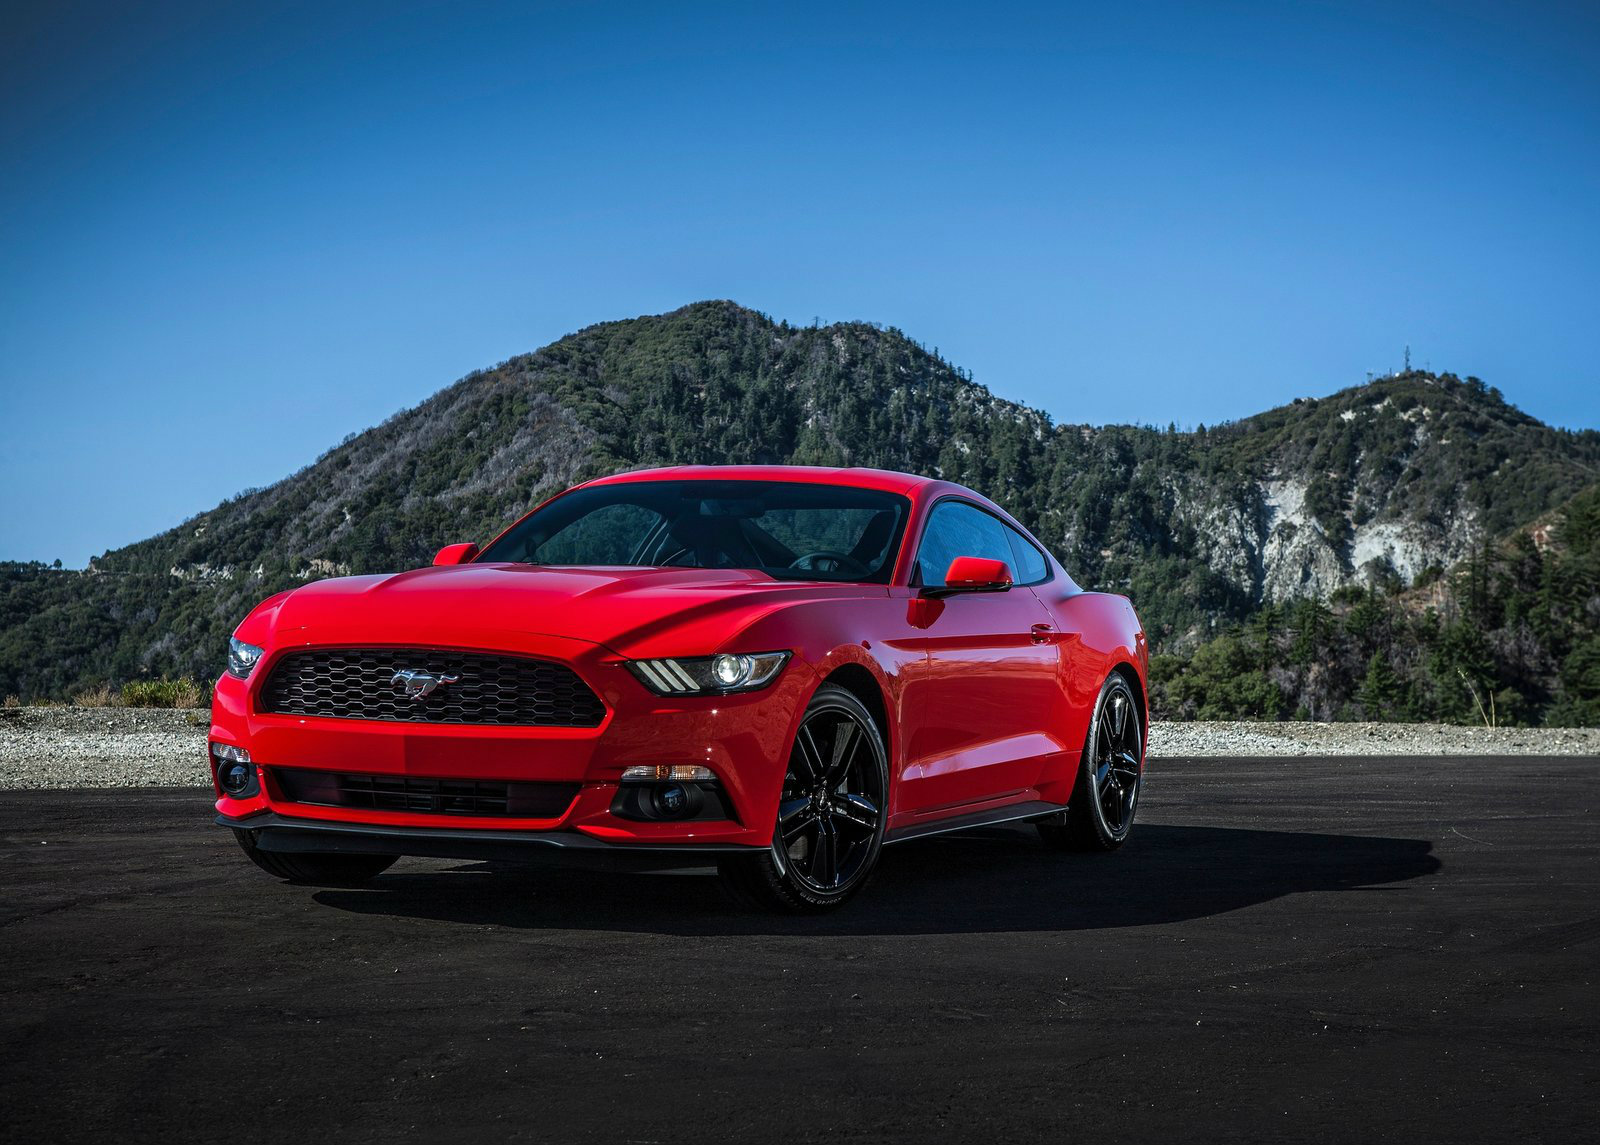 Ford Mustang Ecoboost >> 2015 Ford Mustang European Pricing Announced, 2.3-liter ...